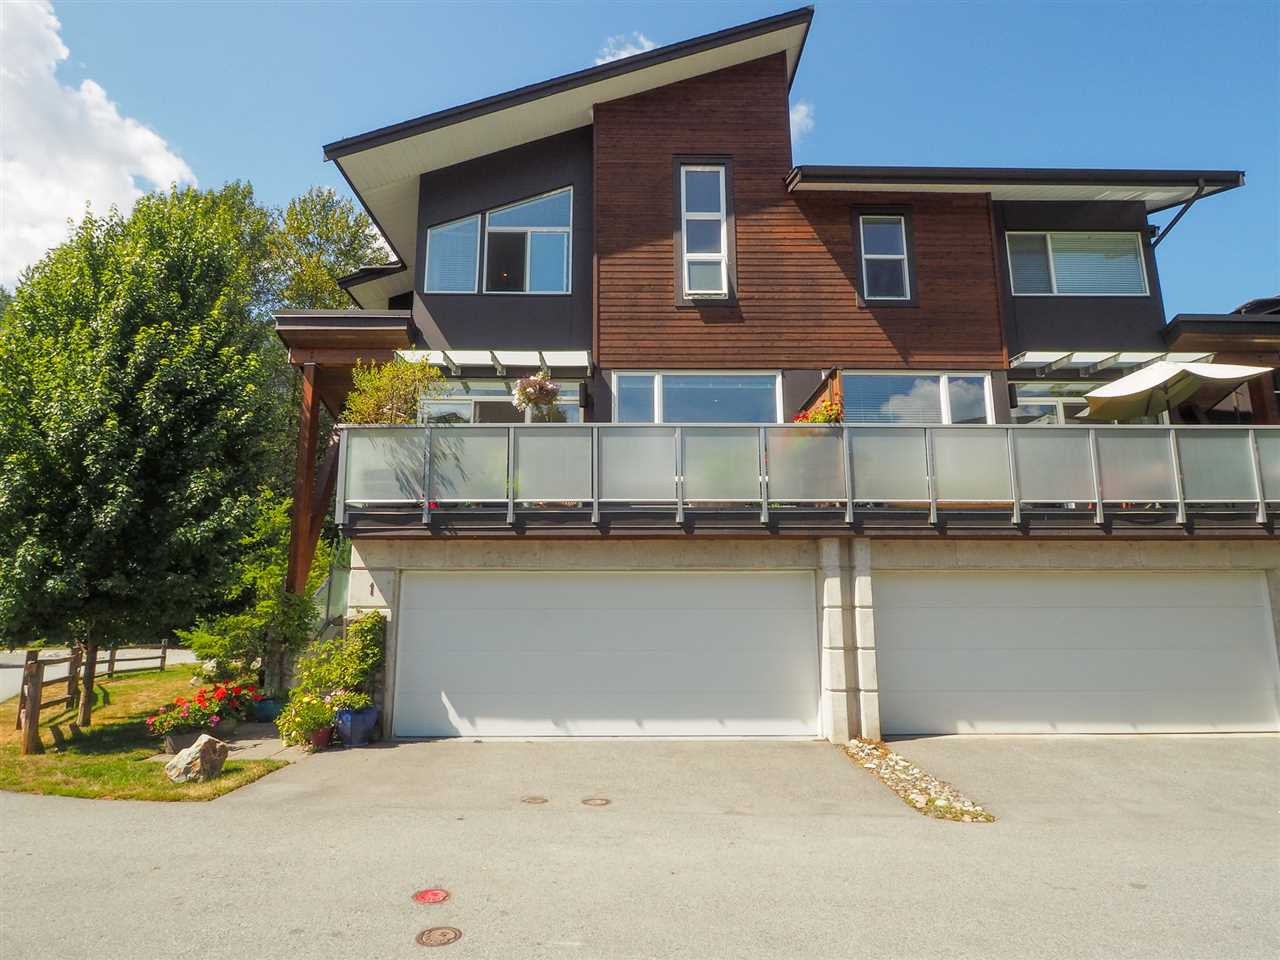 """Main Photo: 1 41488 BRENNAN Road in Squamish: Brackendale Townhouse for sale in """"Rivendale"""" : MLS®# R2485406"""